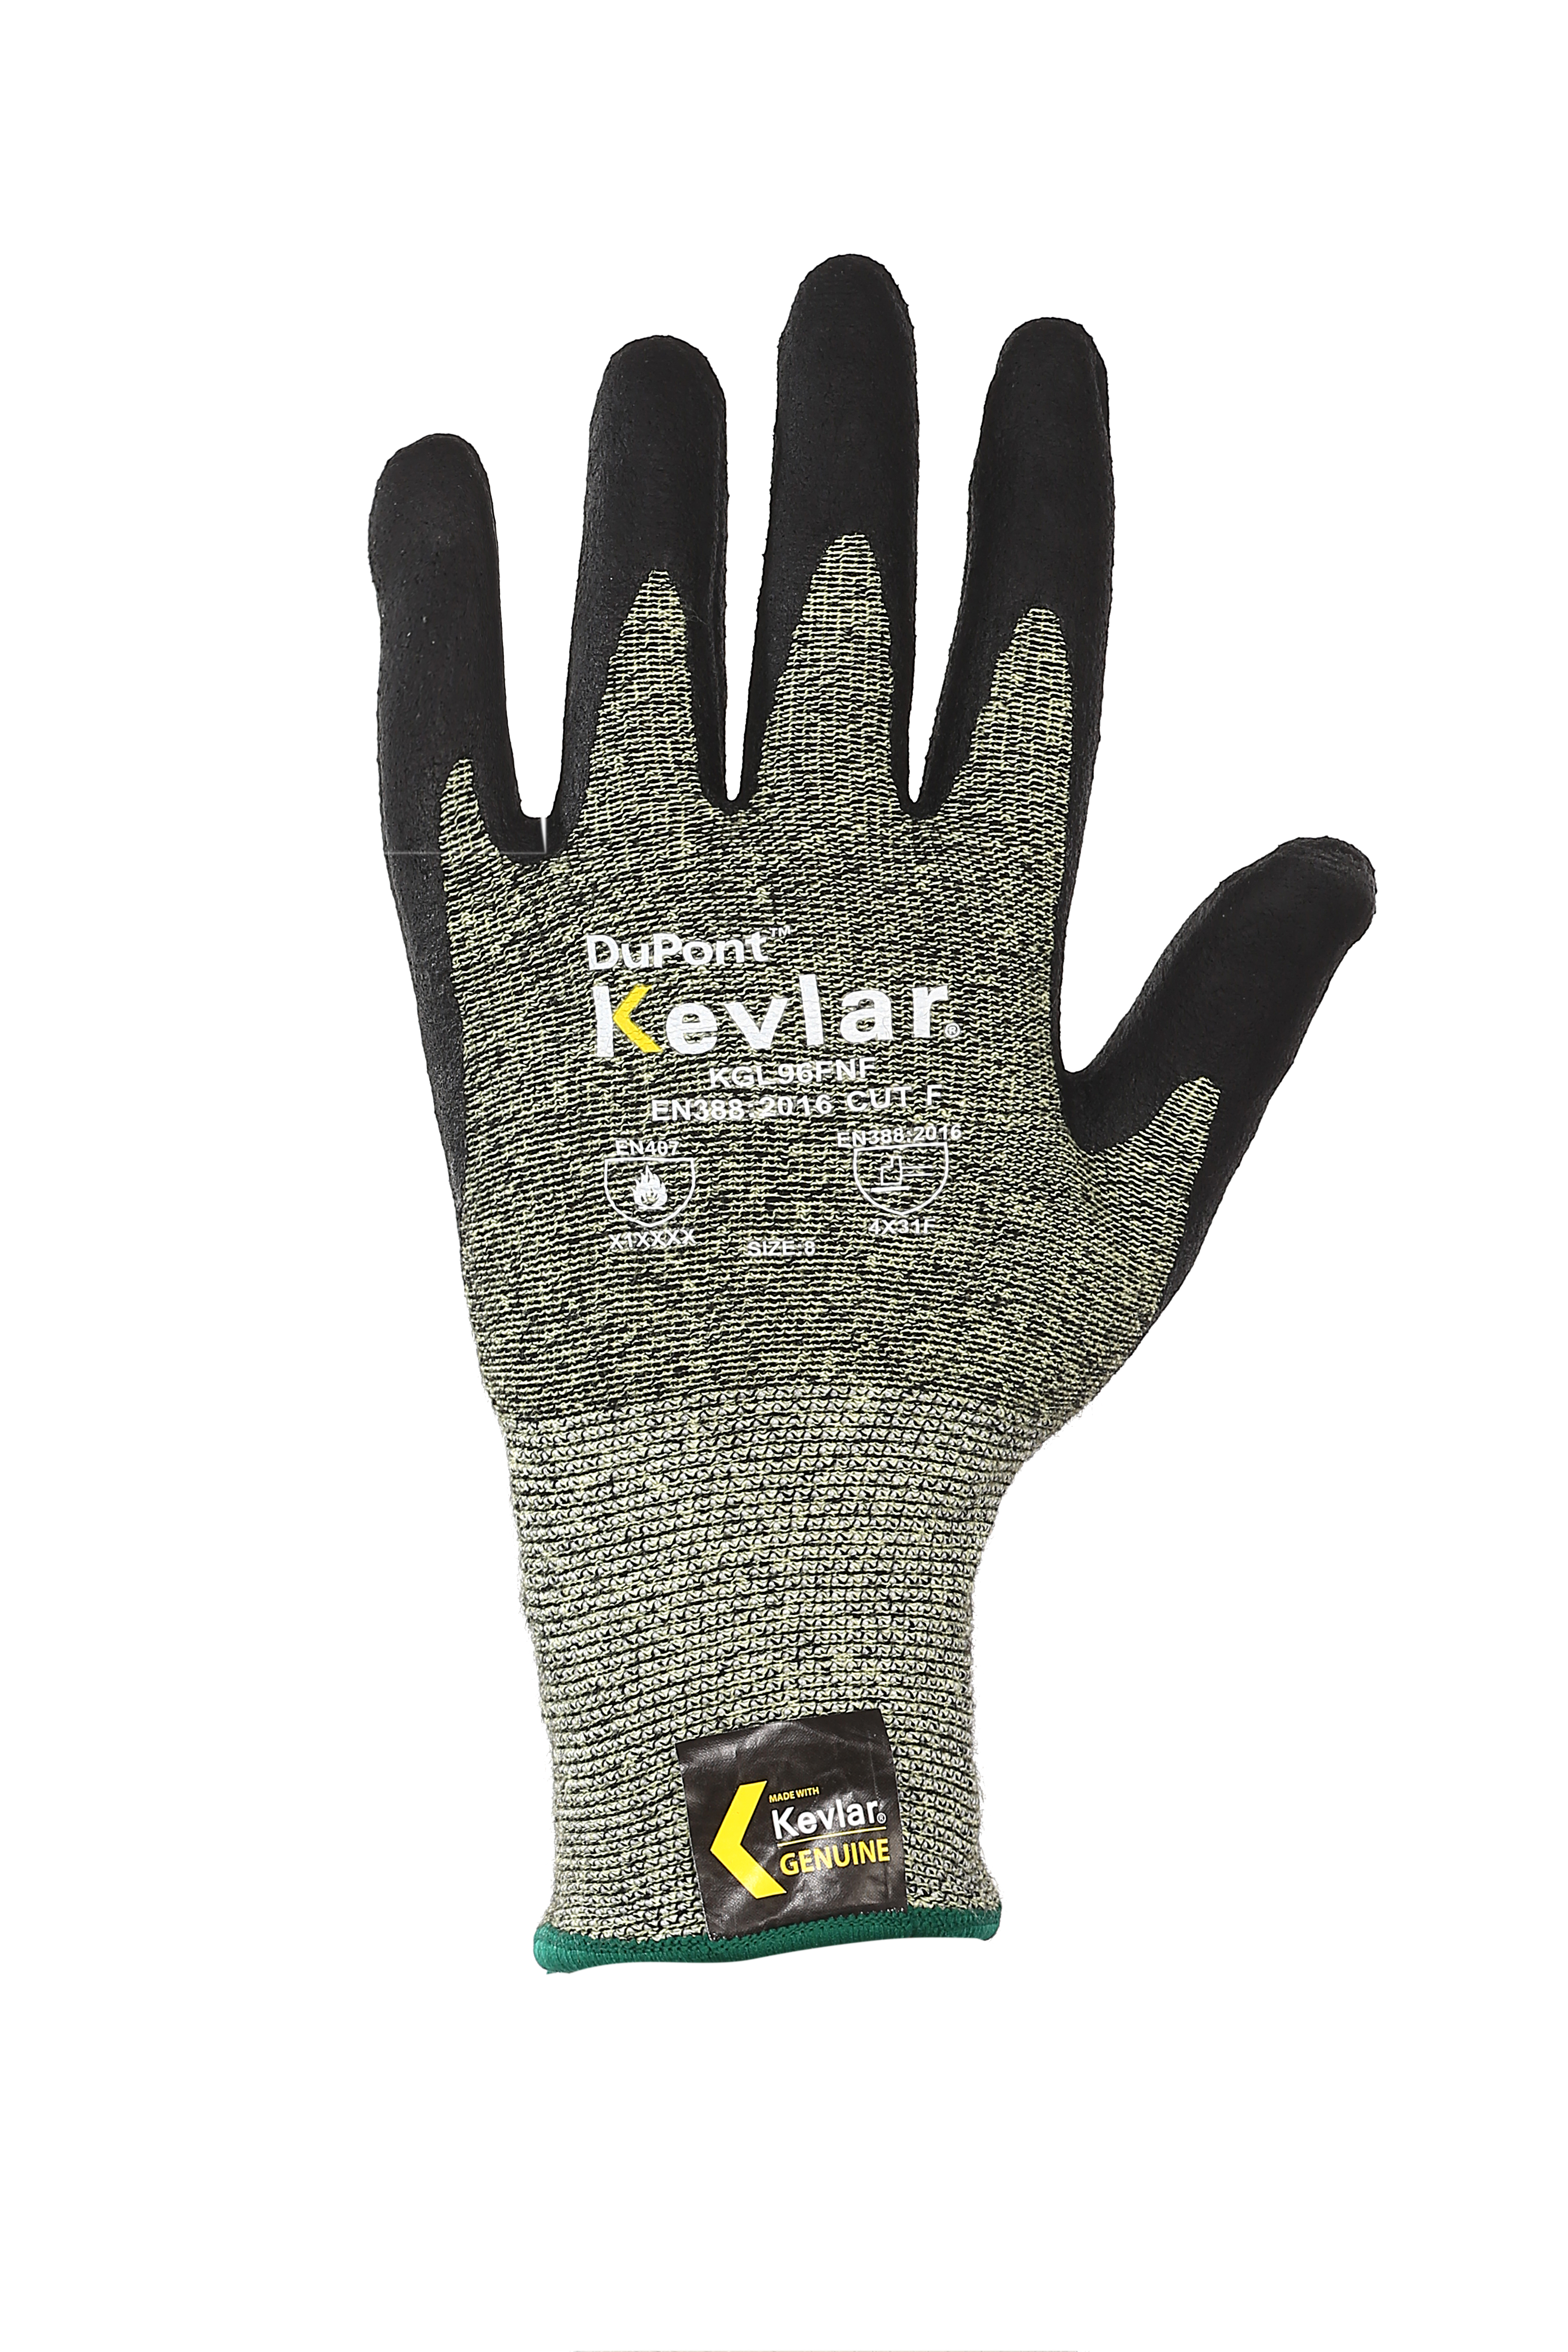 Kevlar® Xtreme 800 FN with Stretch Armor Technology